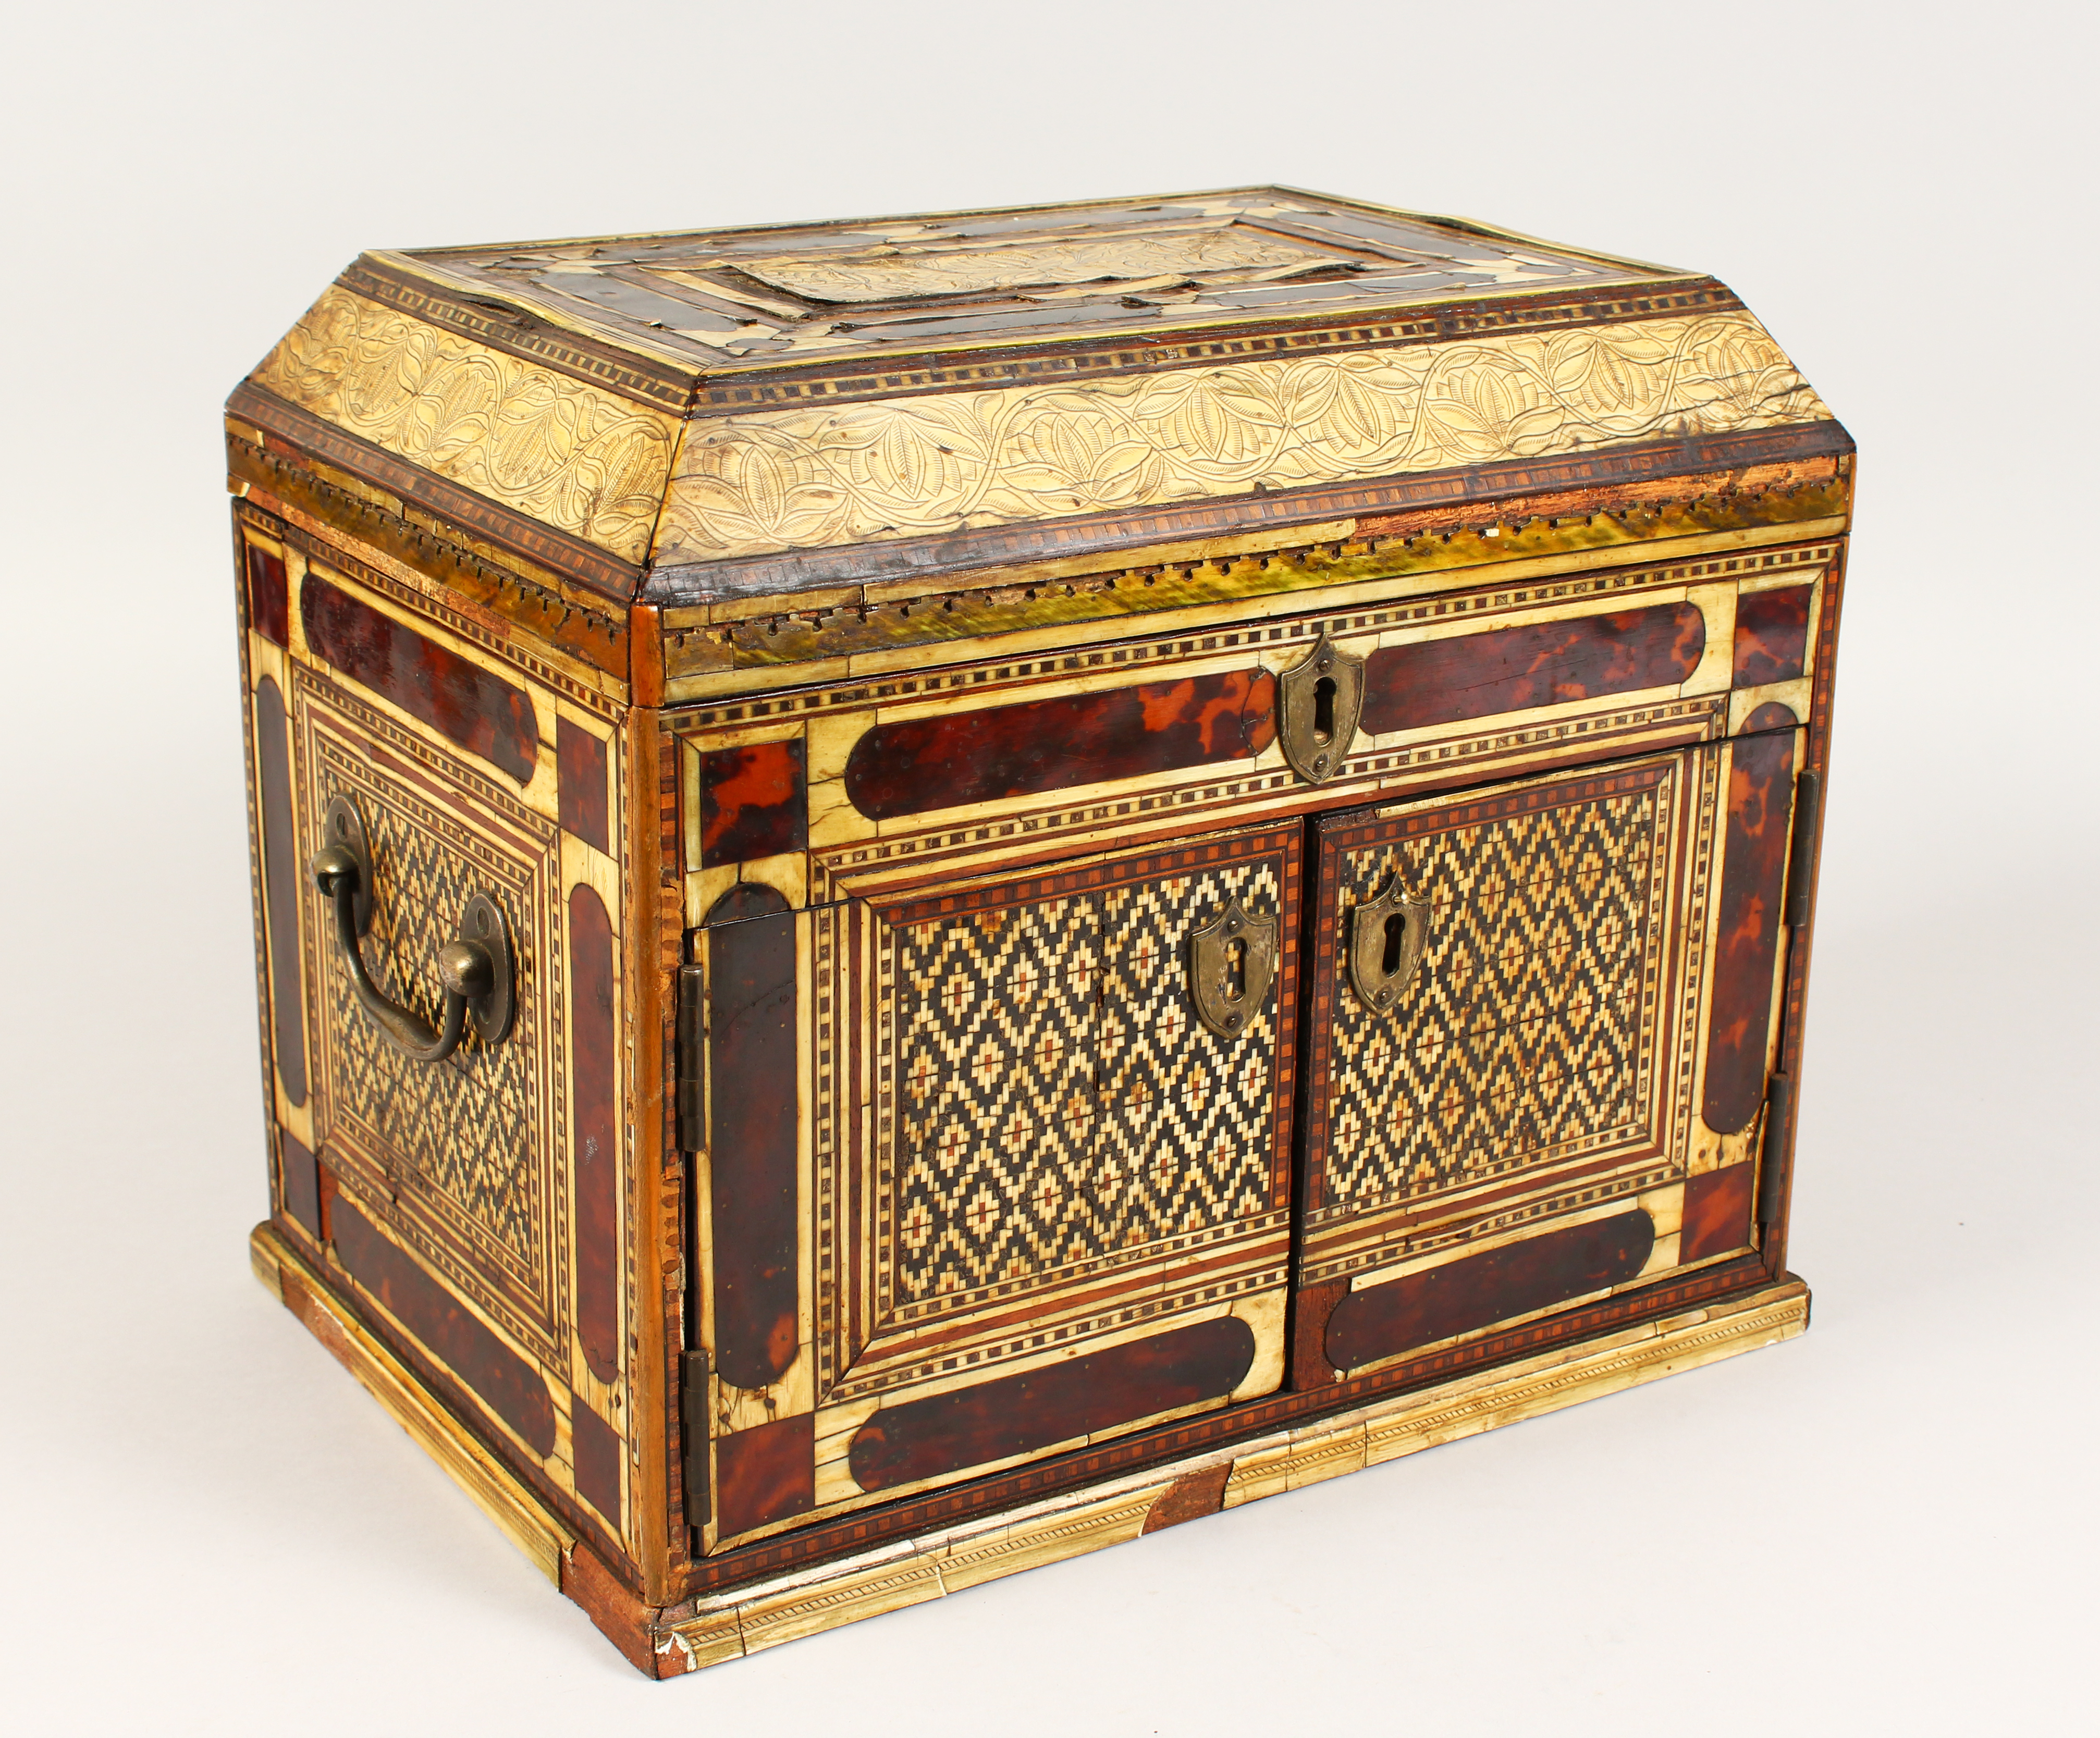 A 17th Century European Table Desk for the Islamic Market./Auctioneers and Valuers